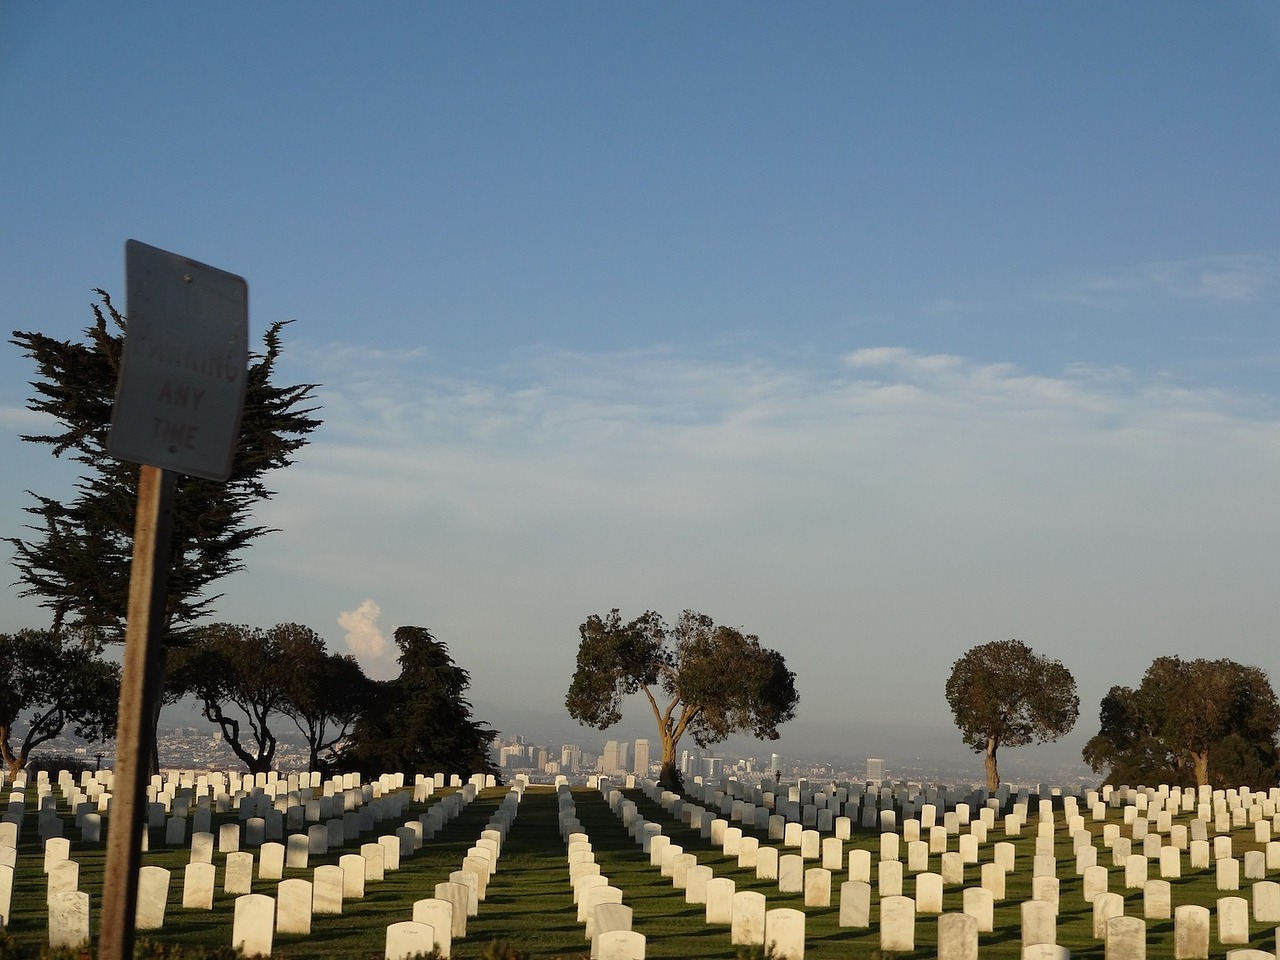 fort rosecrans memorial cemetery military free photo